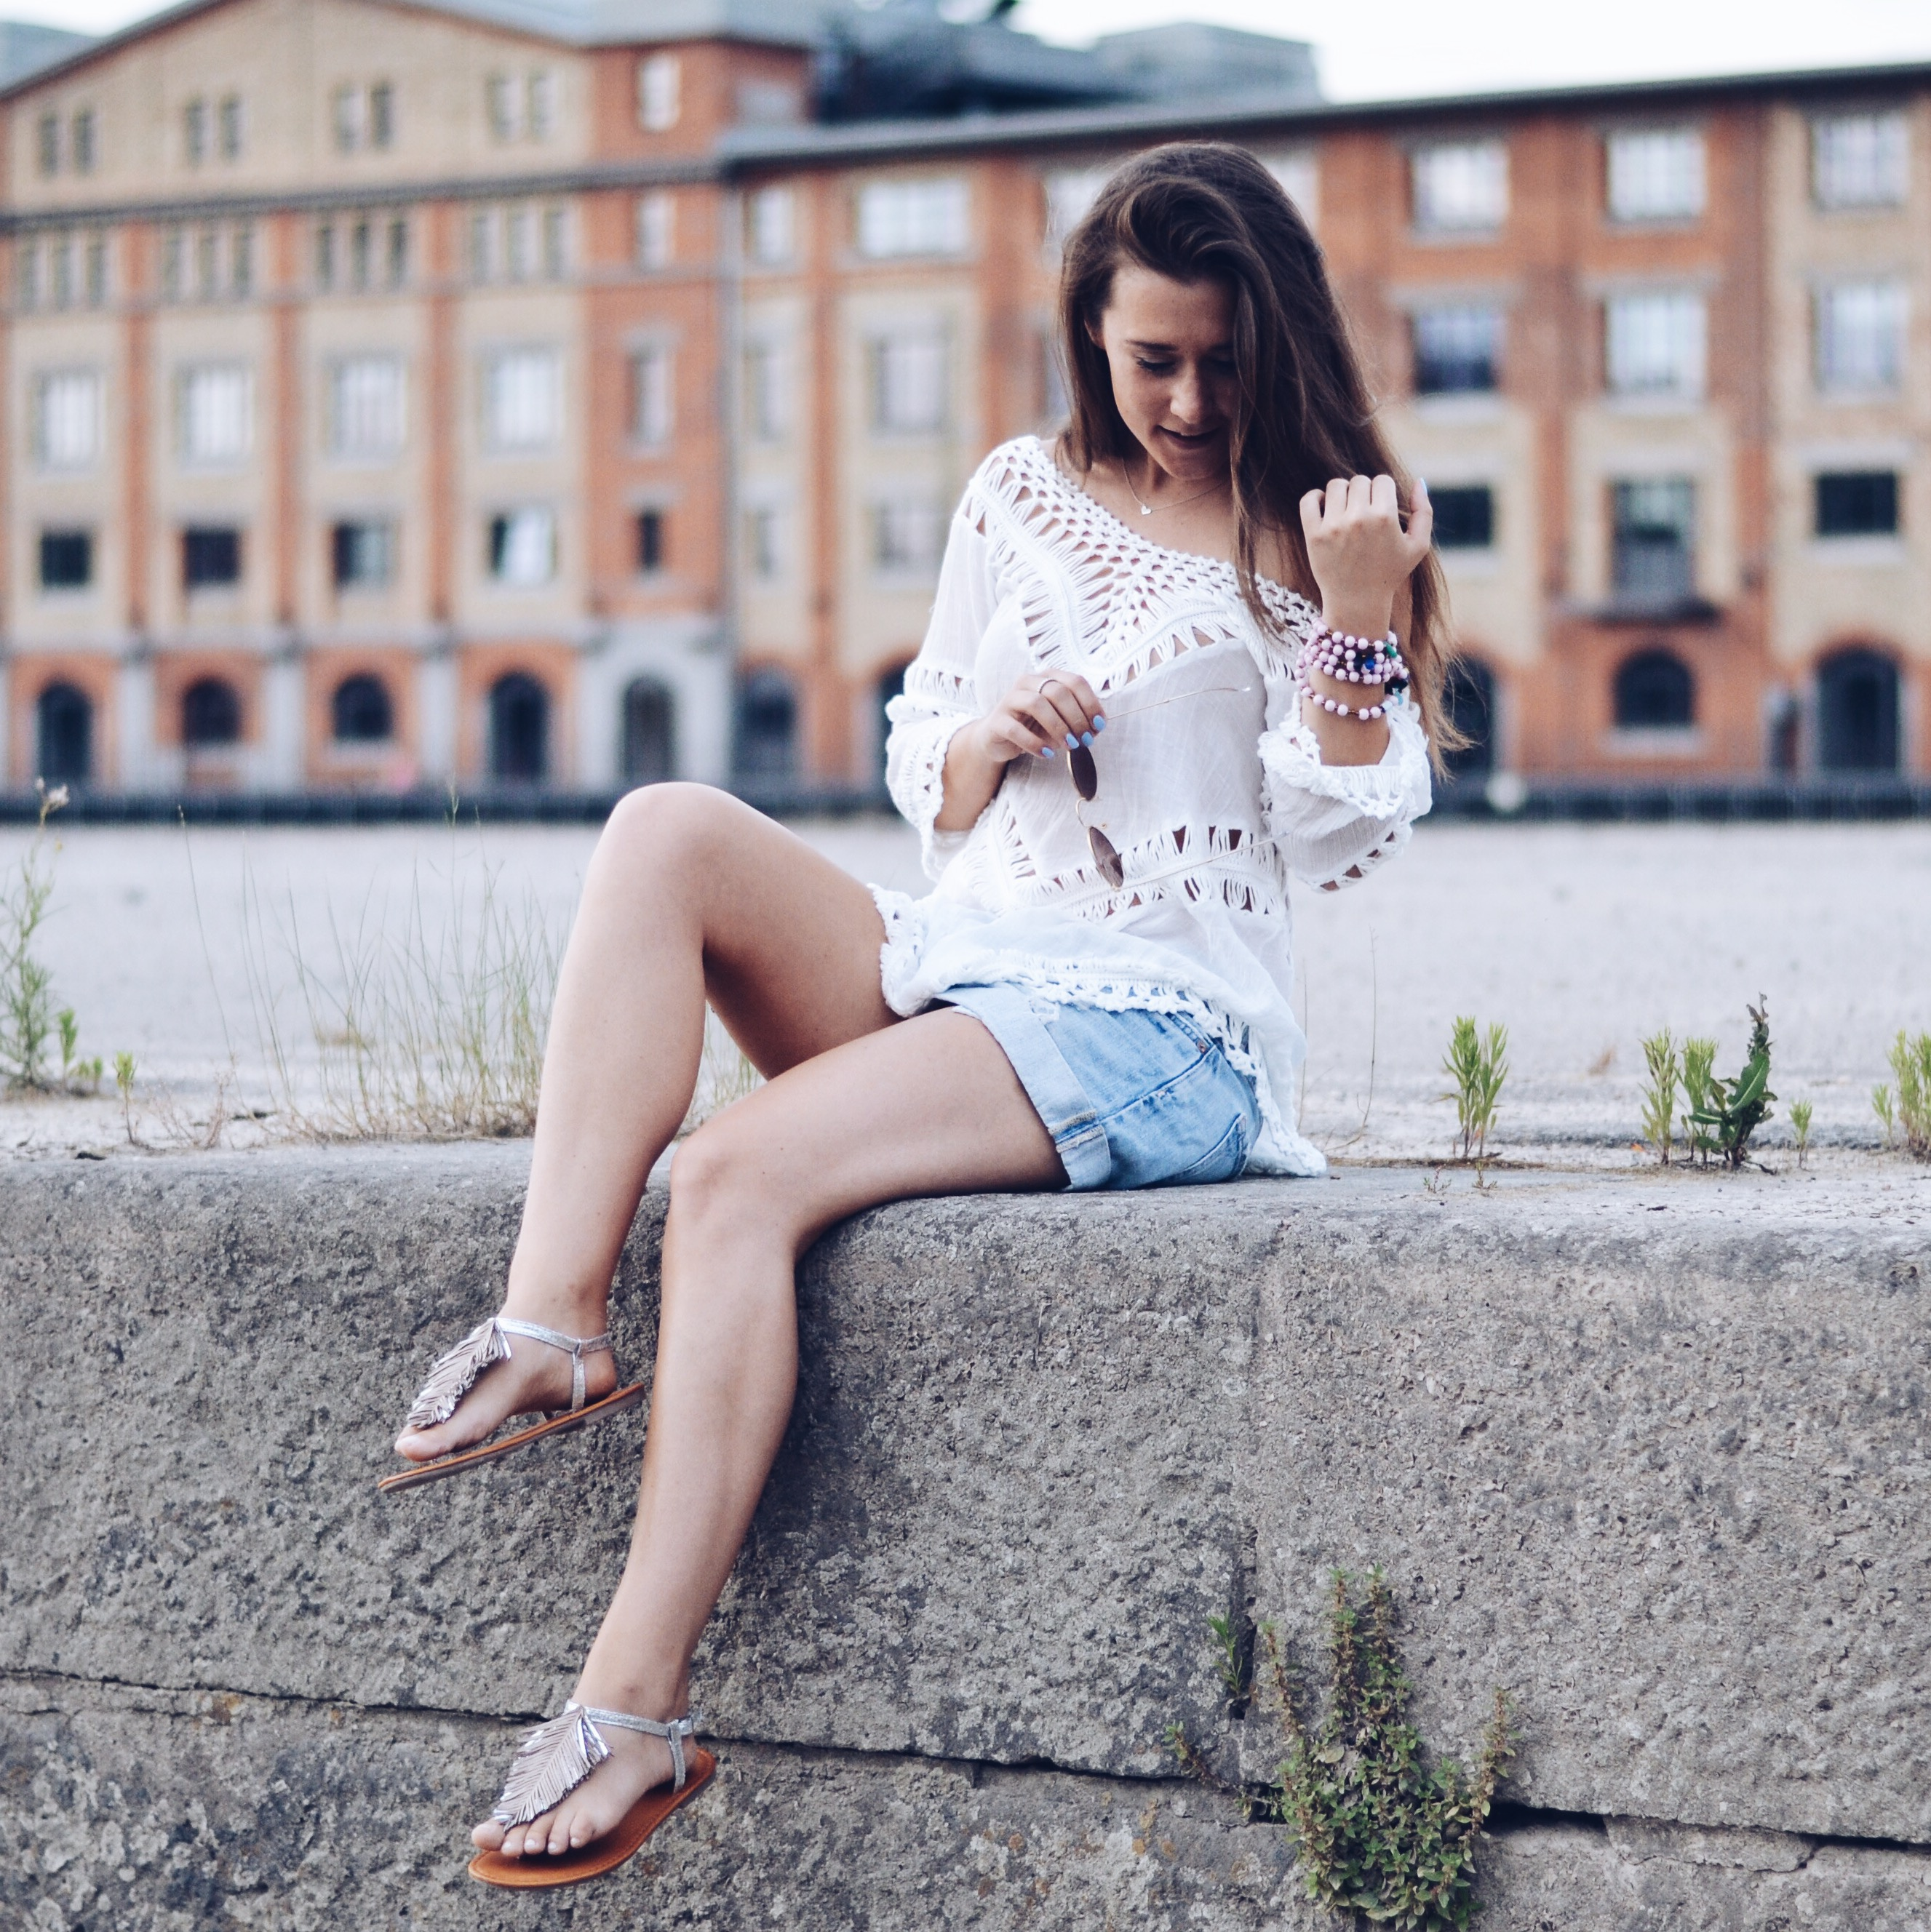 allthatchoices brunette hippie boho look ouitfit inspo inspiration fashionblog fashion fashionblogger tunika häkel spitze jeansshort weiße bluse sommer ibiza ray ban round metal rosa gold rose boyfriendshorts ripped jeans